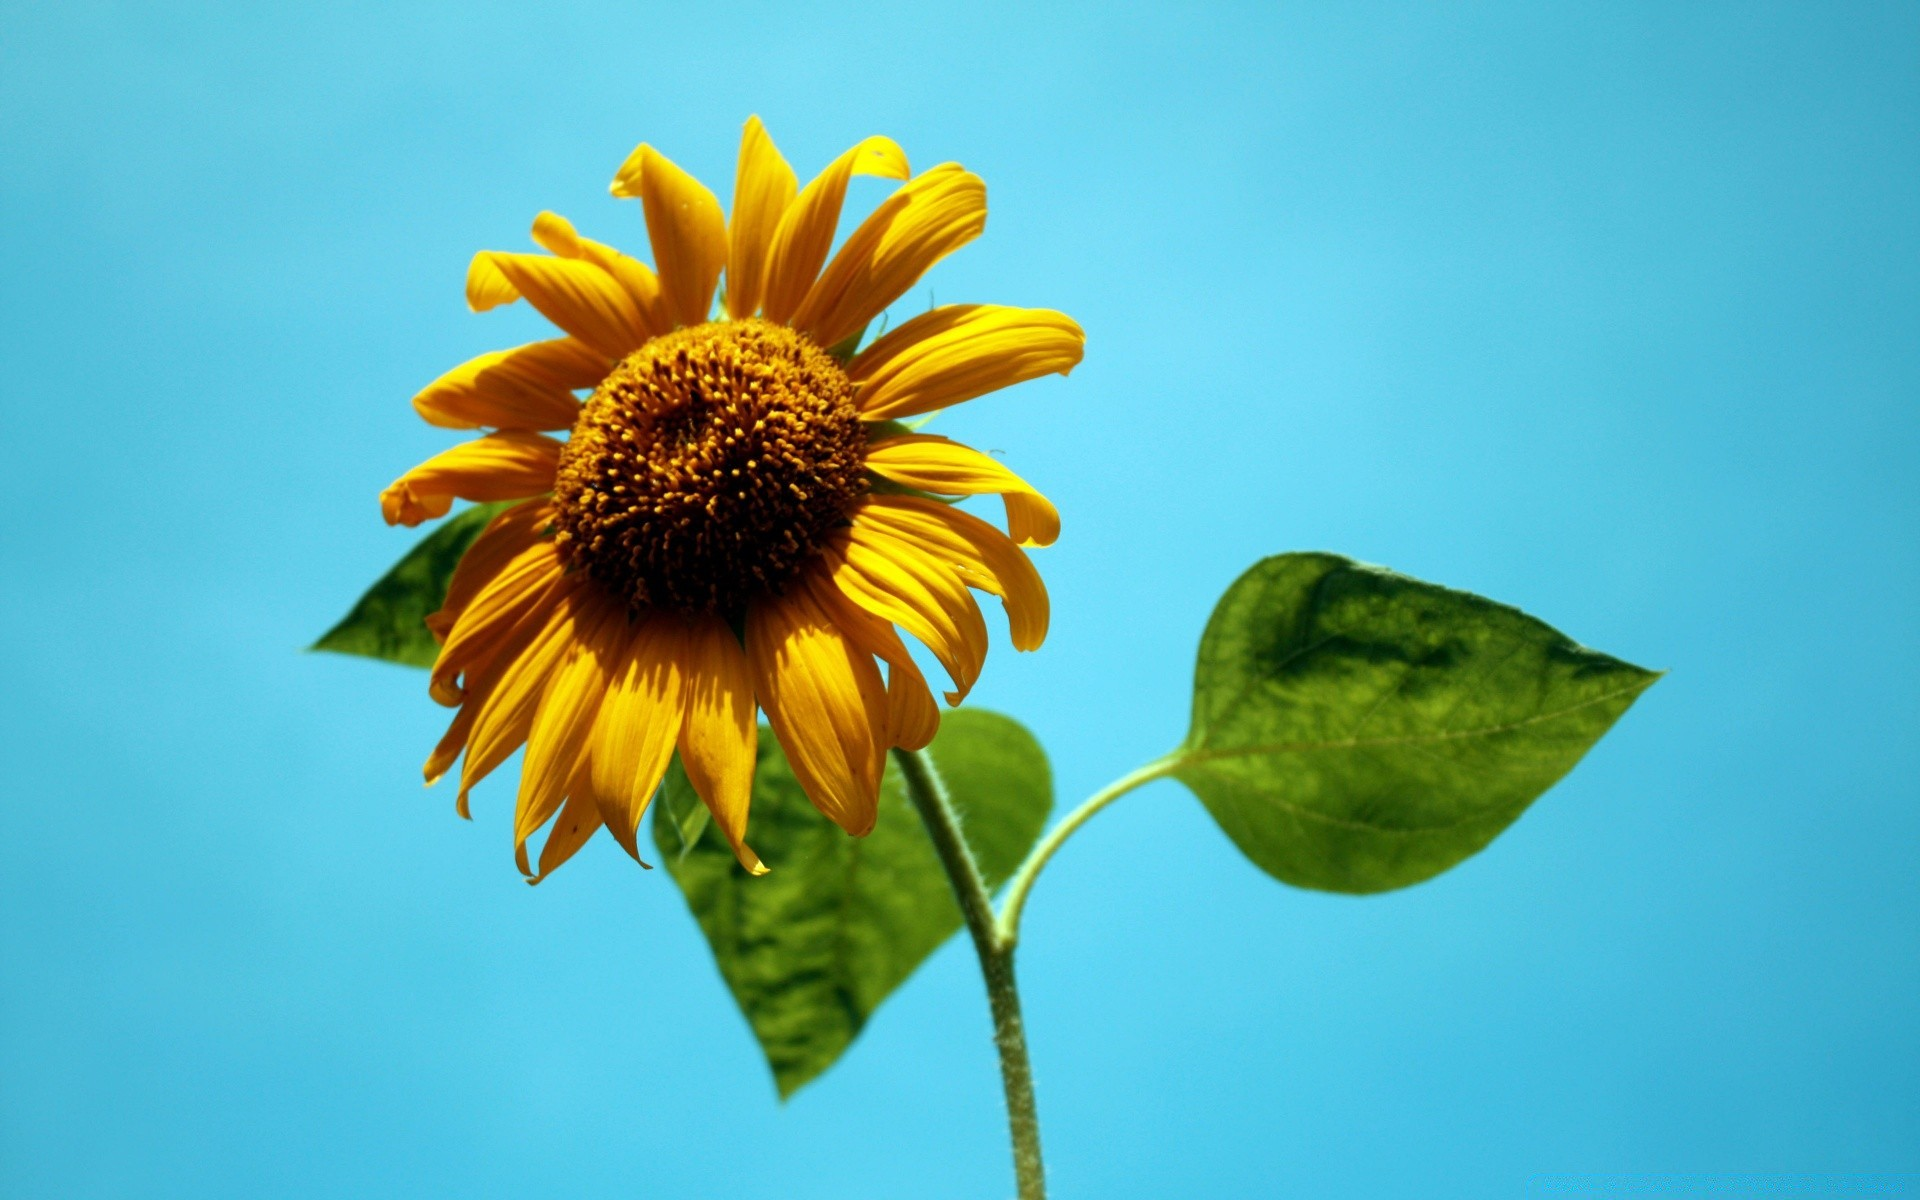 flowers nature flower summer flora outdoors leaf growth fair weather petal bright sunflower